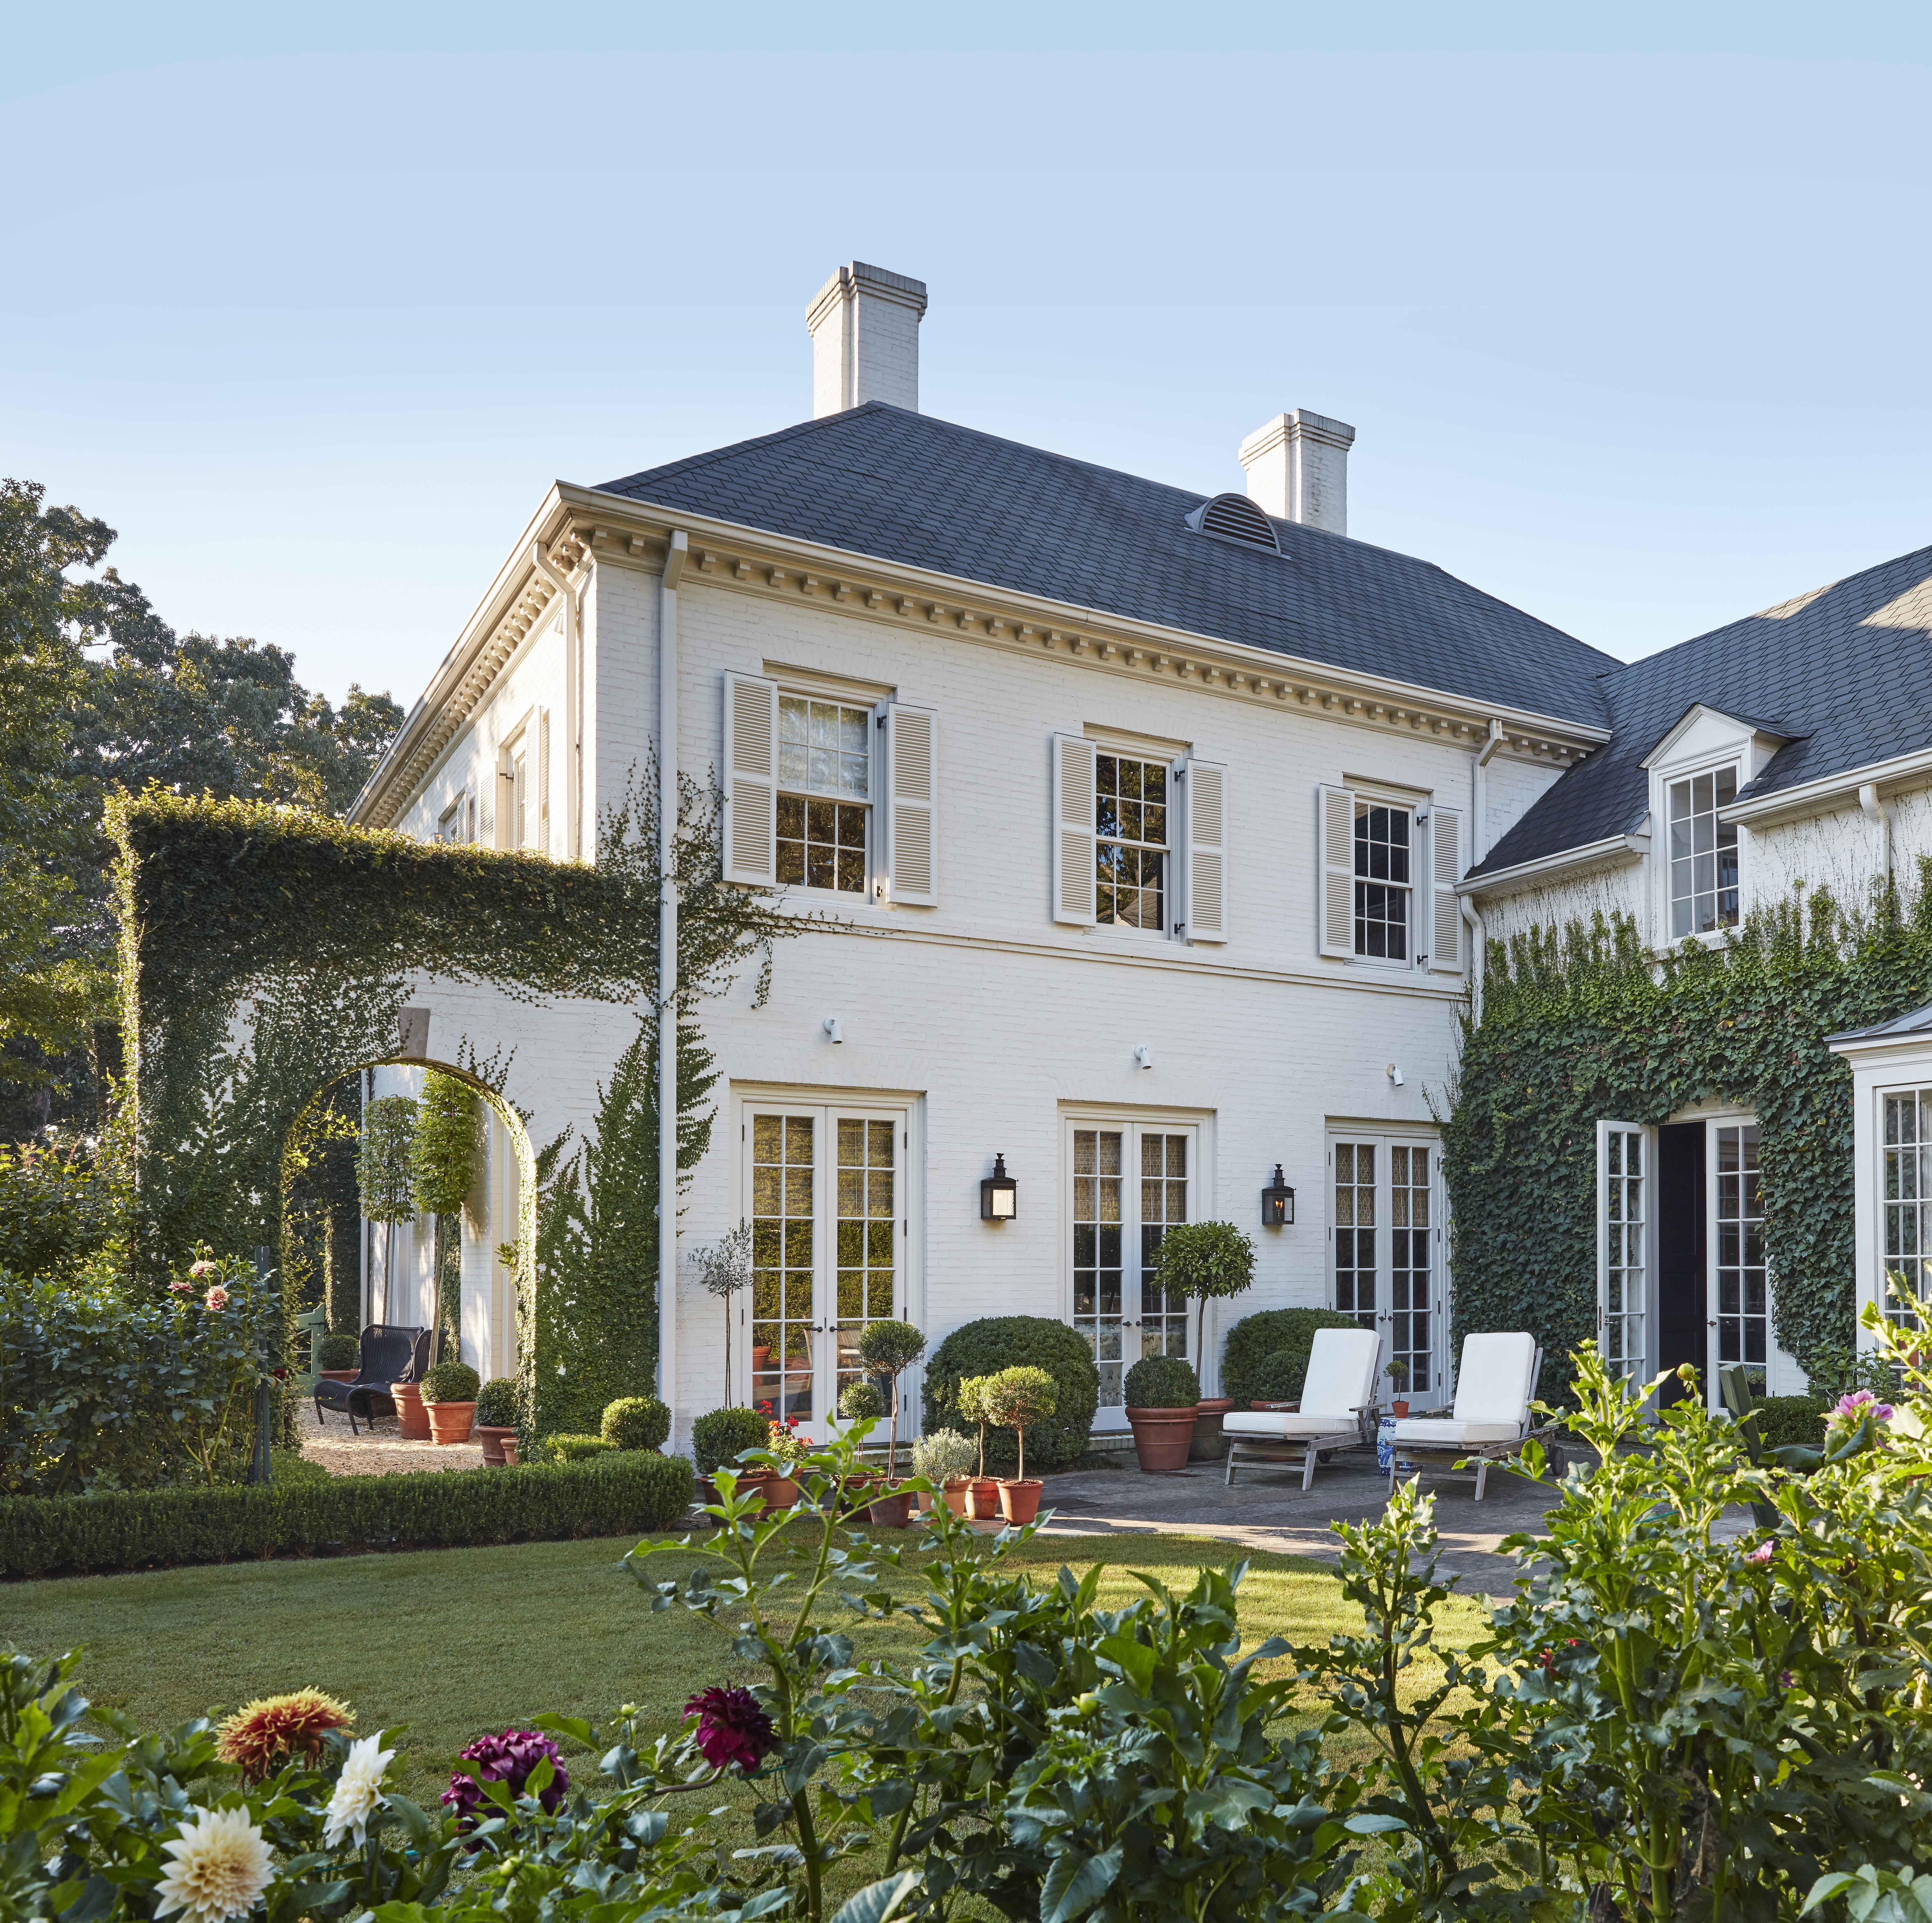 Classical Architecture and Vivacious Patterns Mix Artfully in Designer Caroline Gidiere's Home